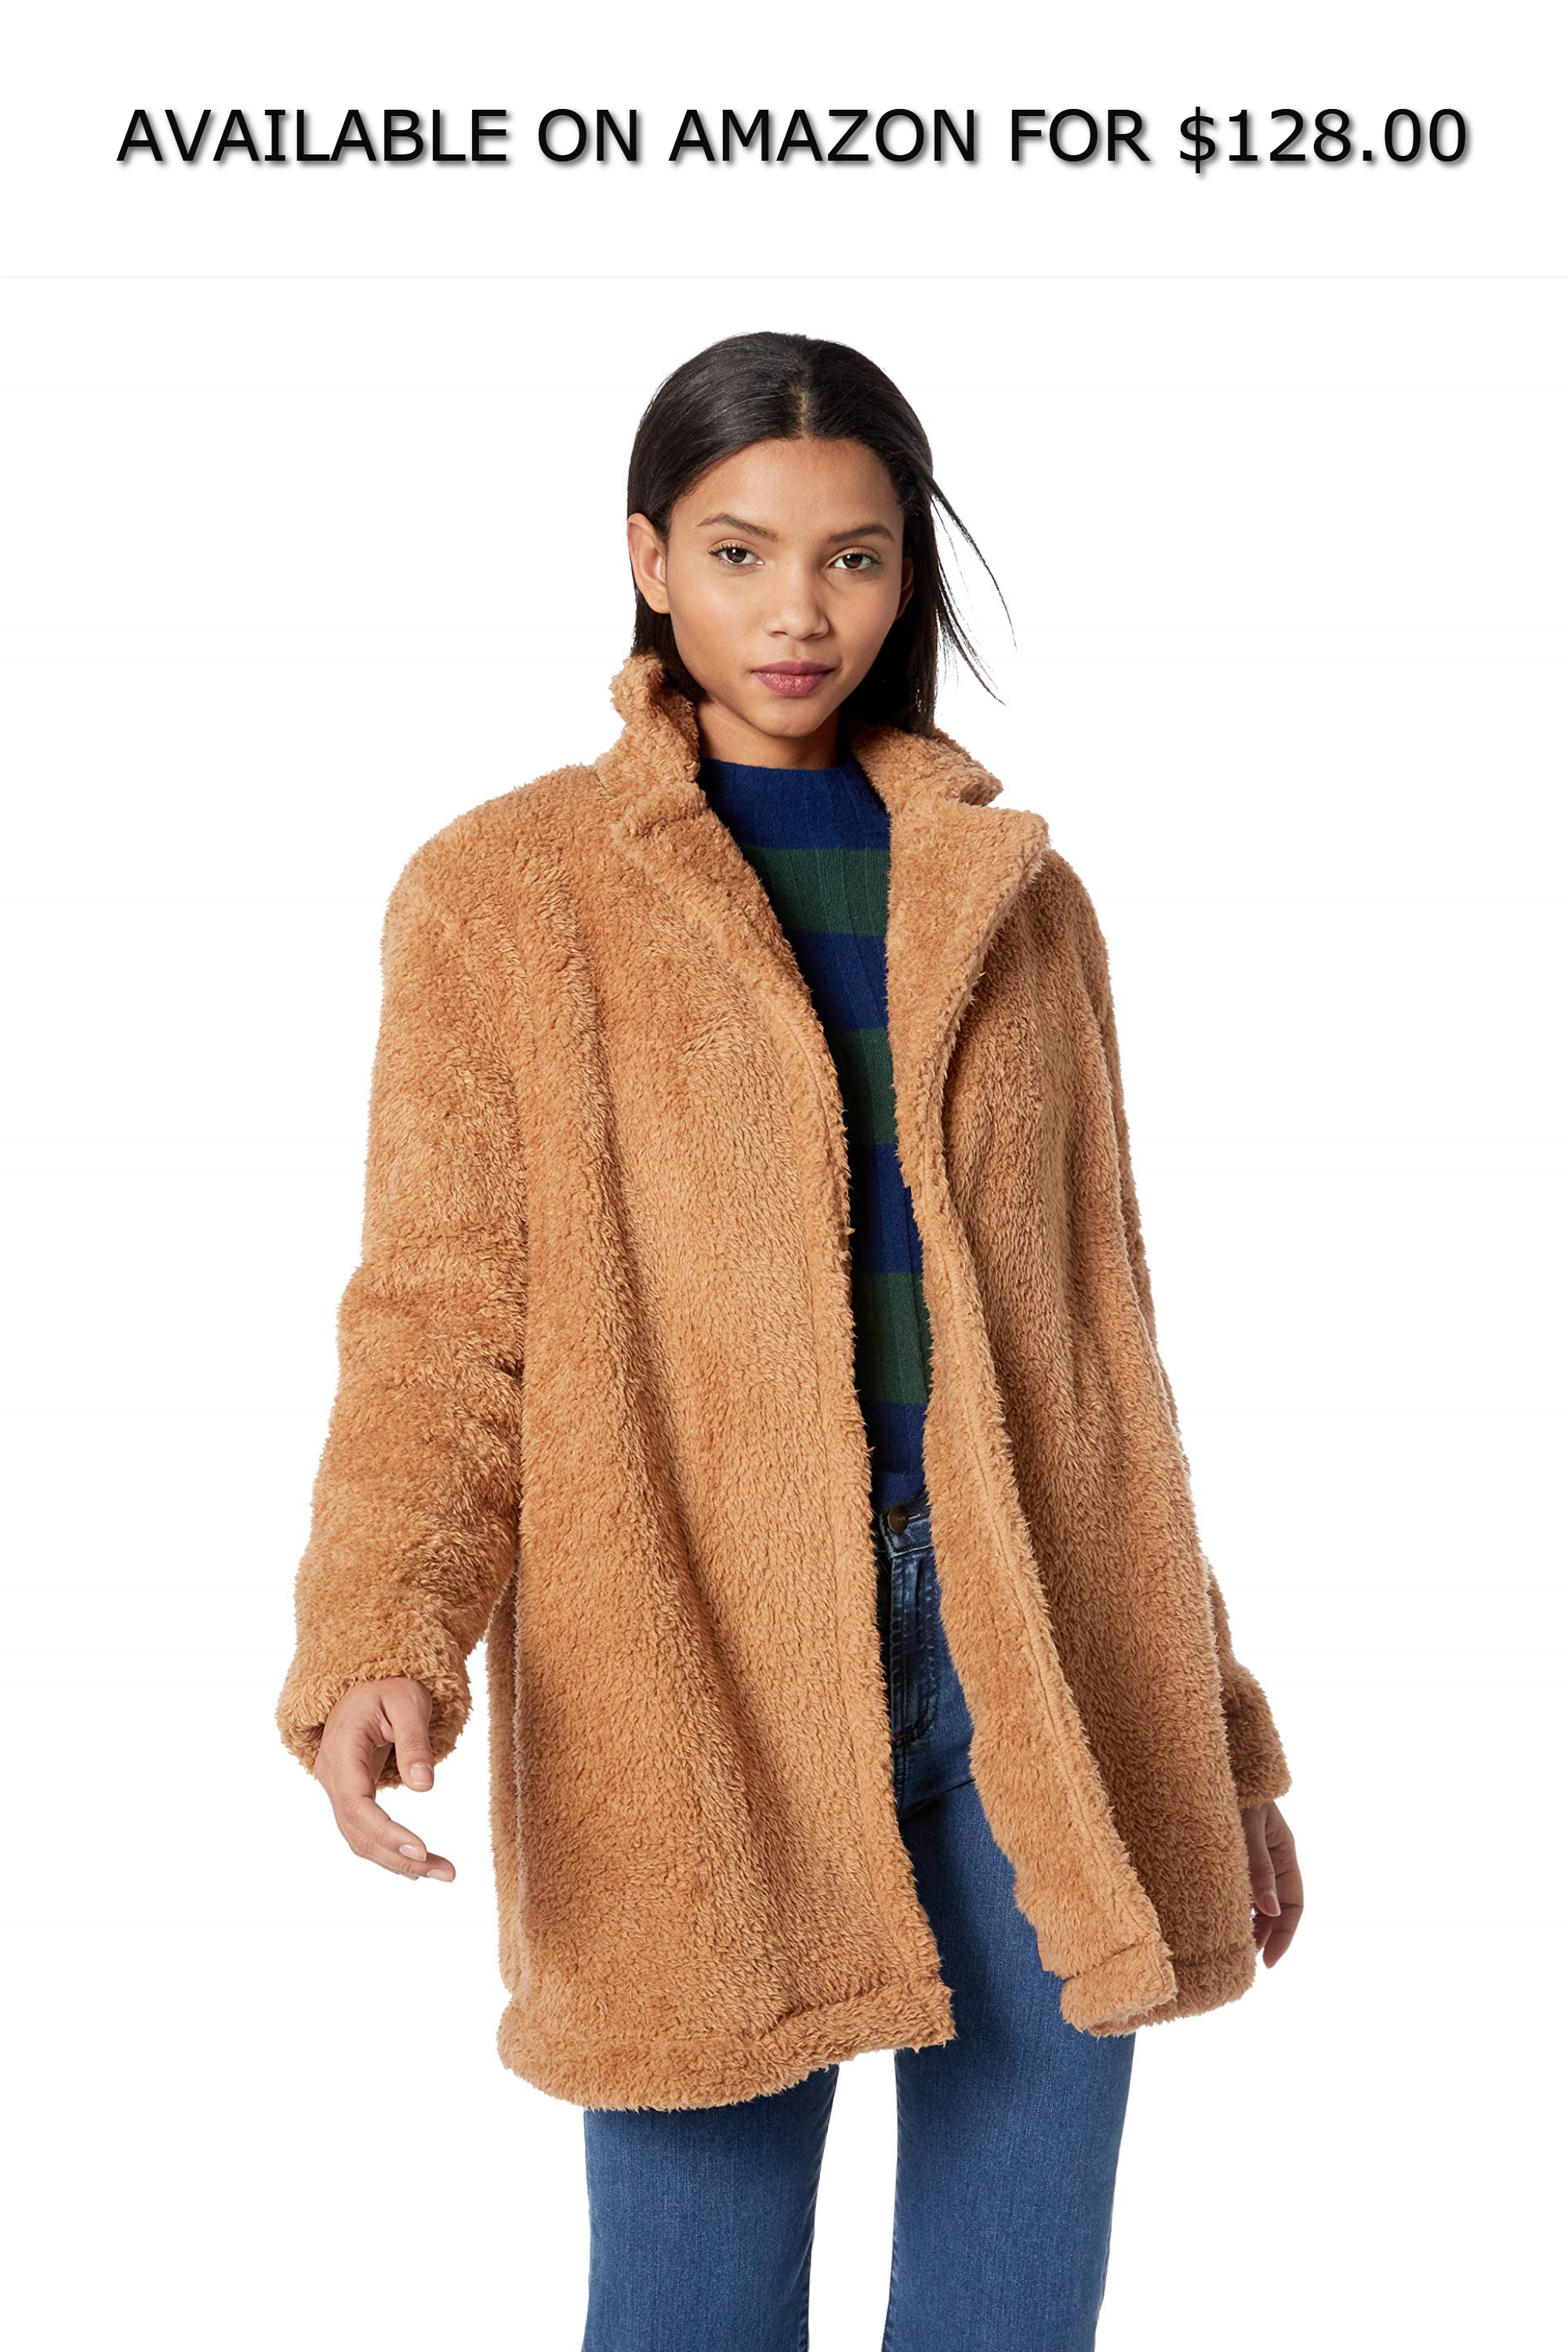 ca5189f0a10 The Fifth Label Women's Paige Teddy Soft Faux Fur Coat ◇ AVAILABLE ON  AMAZON FOR: